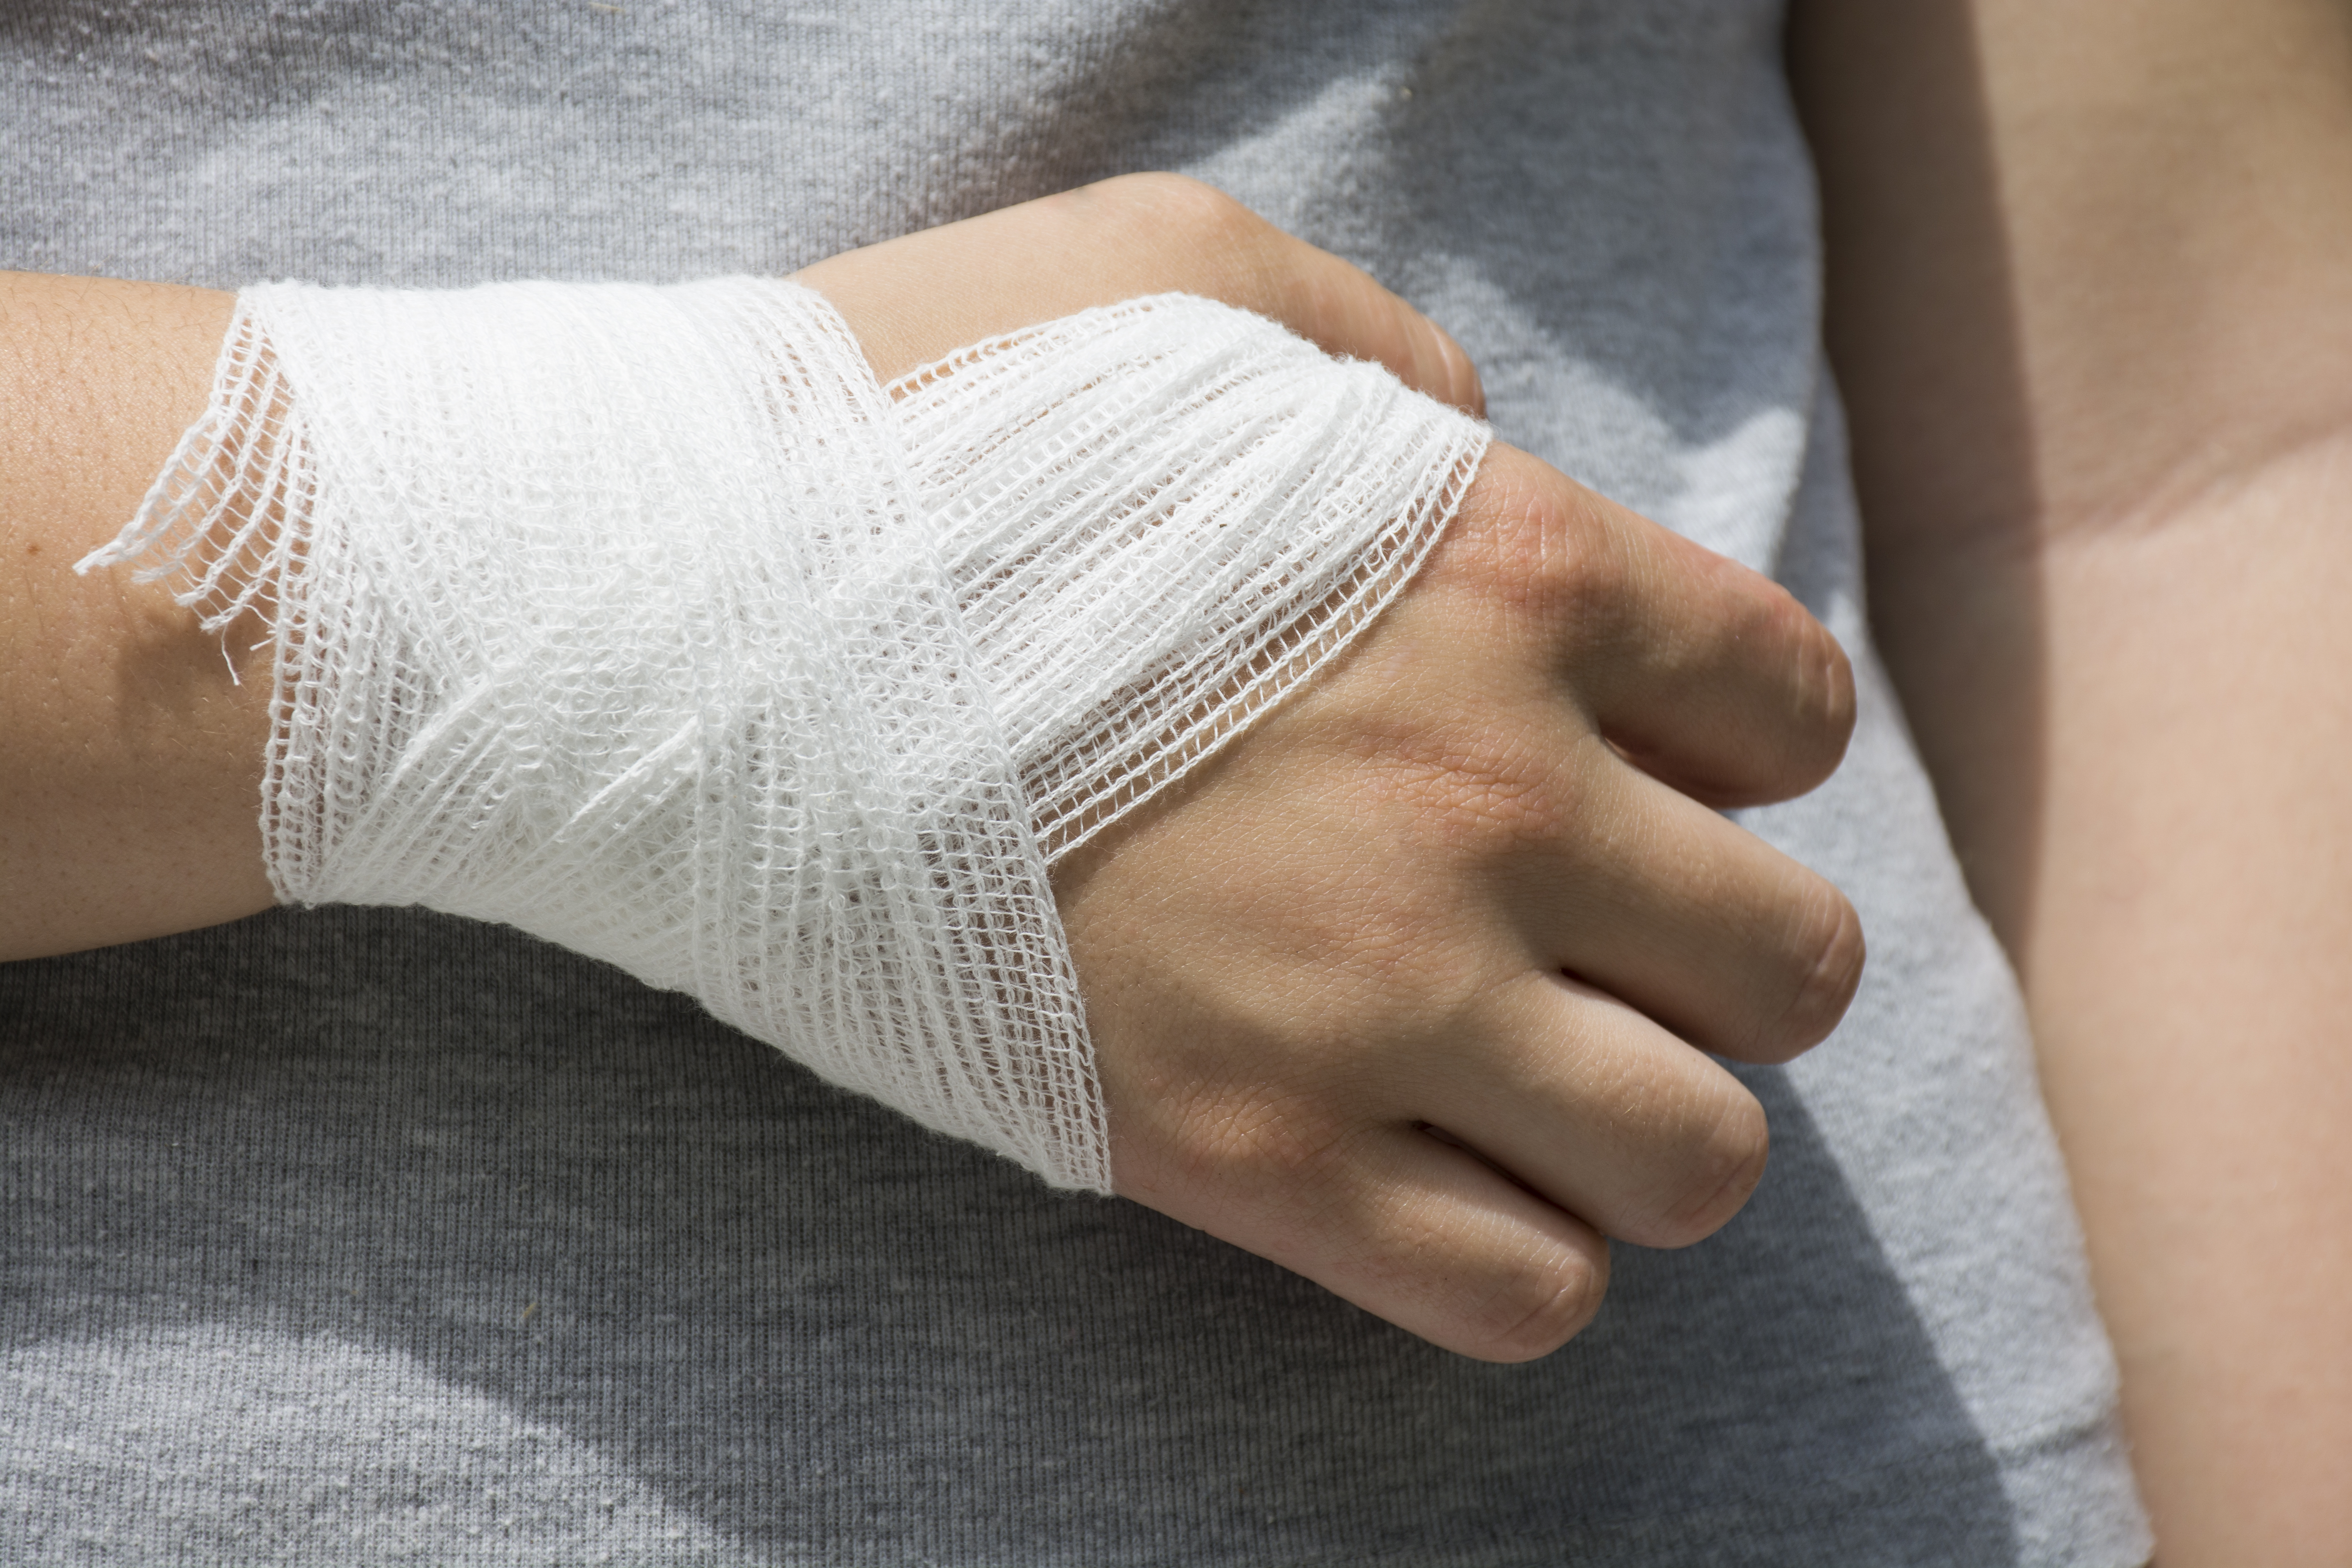 Wrist injury with a bandage